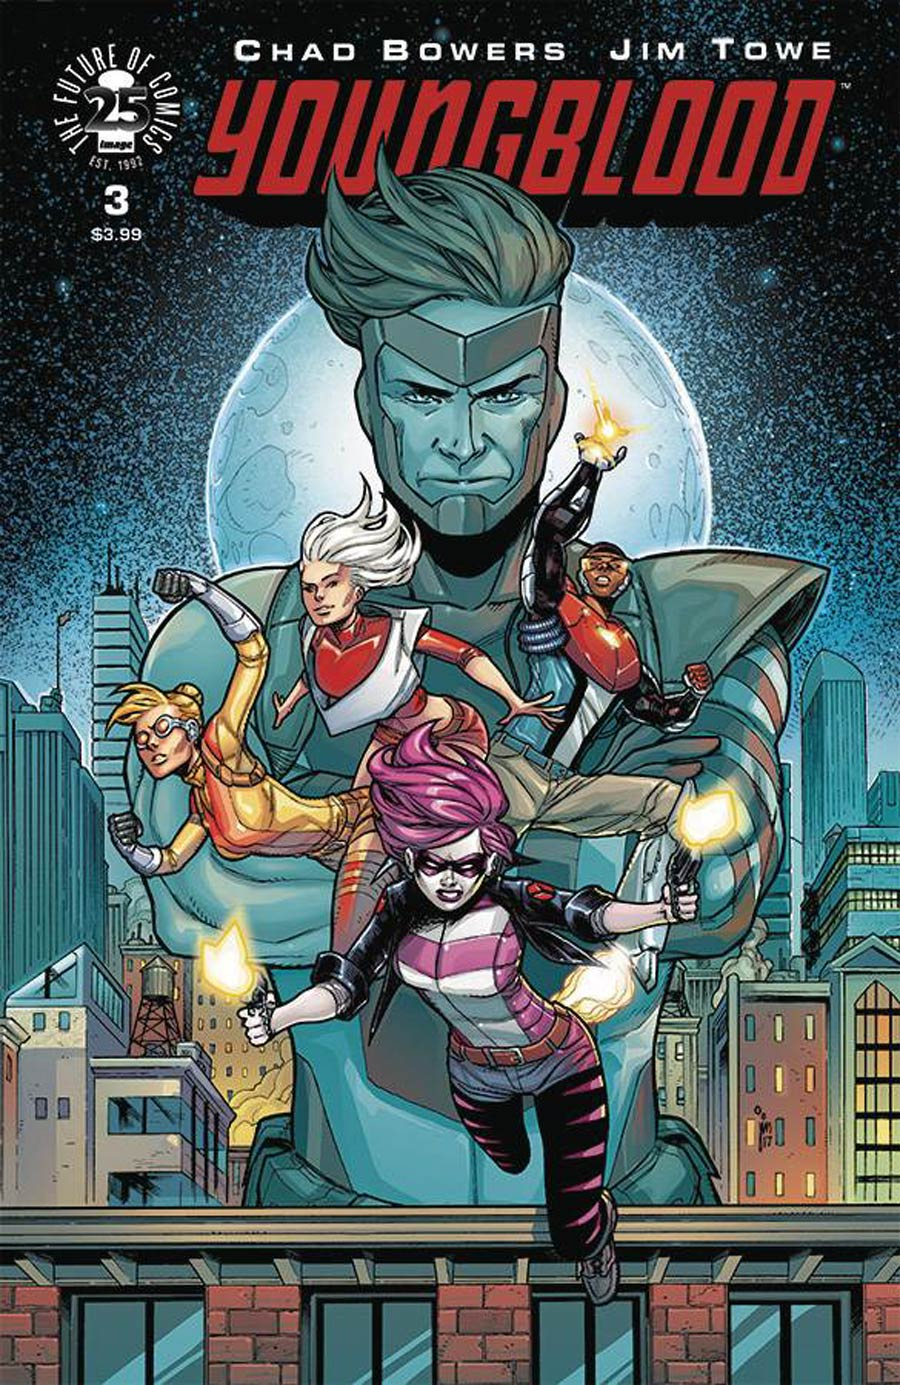 Youngblood Vol 5 #3 Cover A Jim Towe